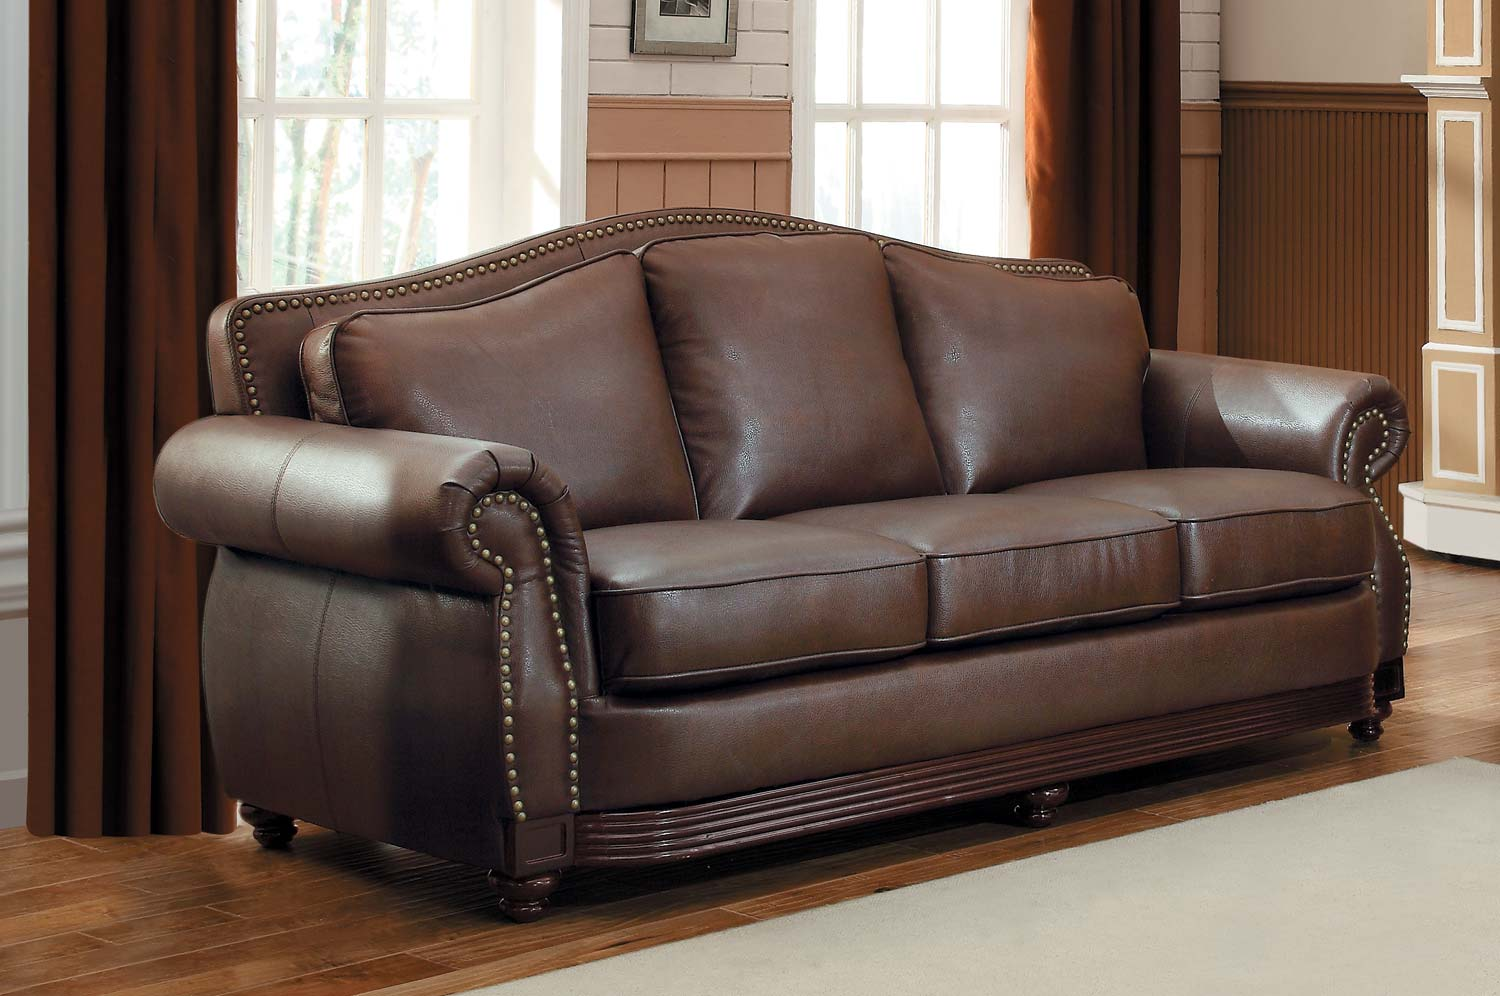 Homelegance Midwood Brown Sofa